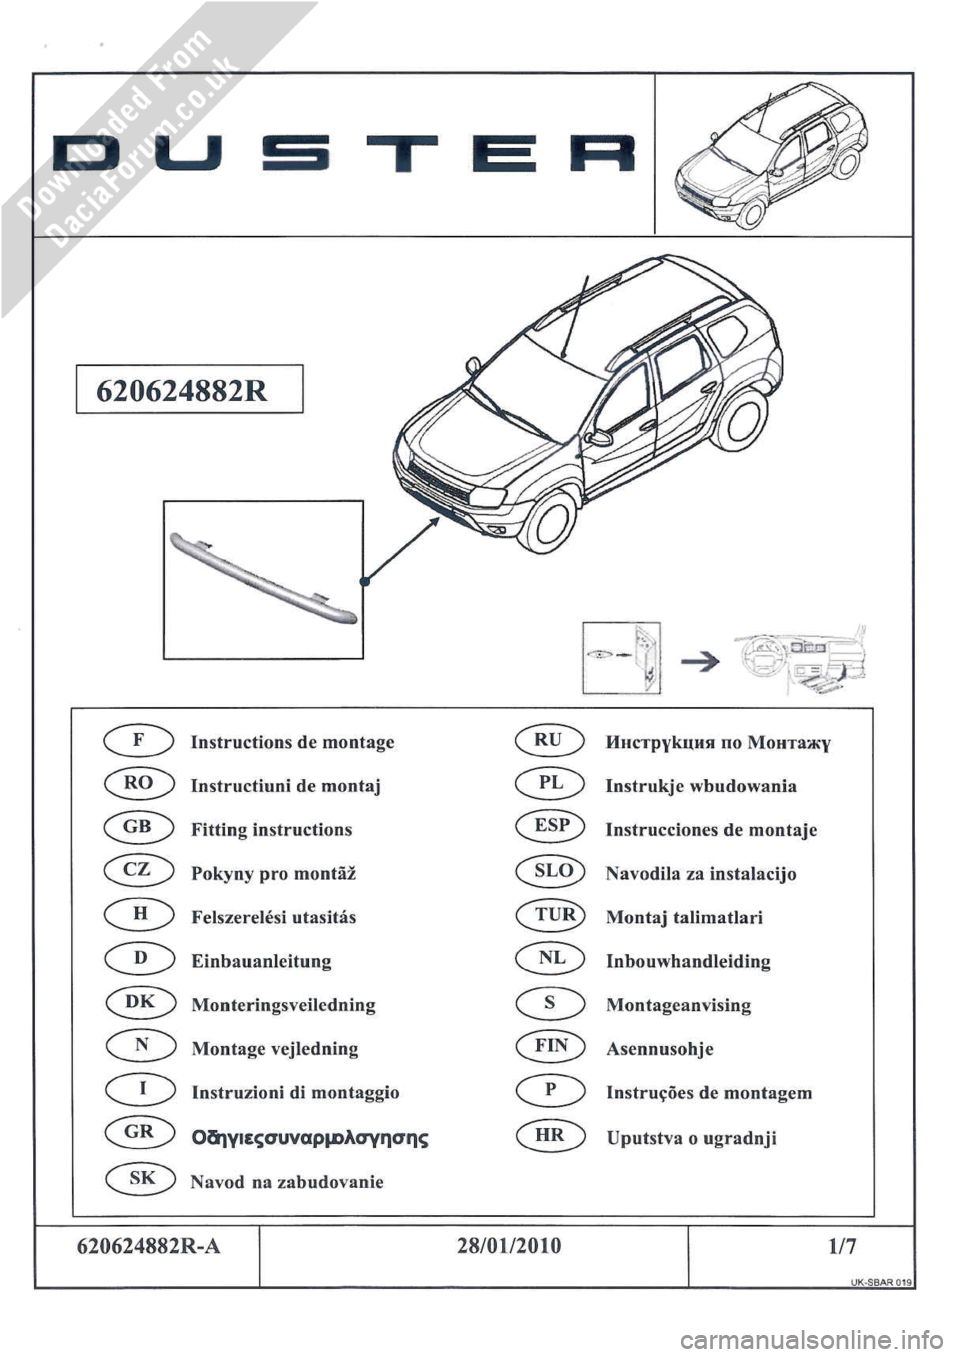 DACIA DUSTER 2010 1.G Front Styling Bar Fitting Guide Workshop Manual, Page 1